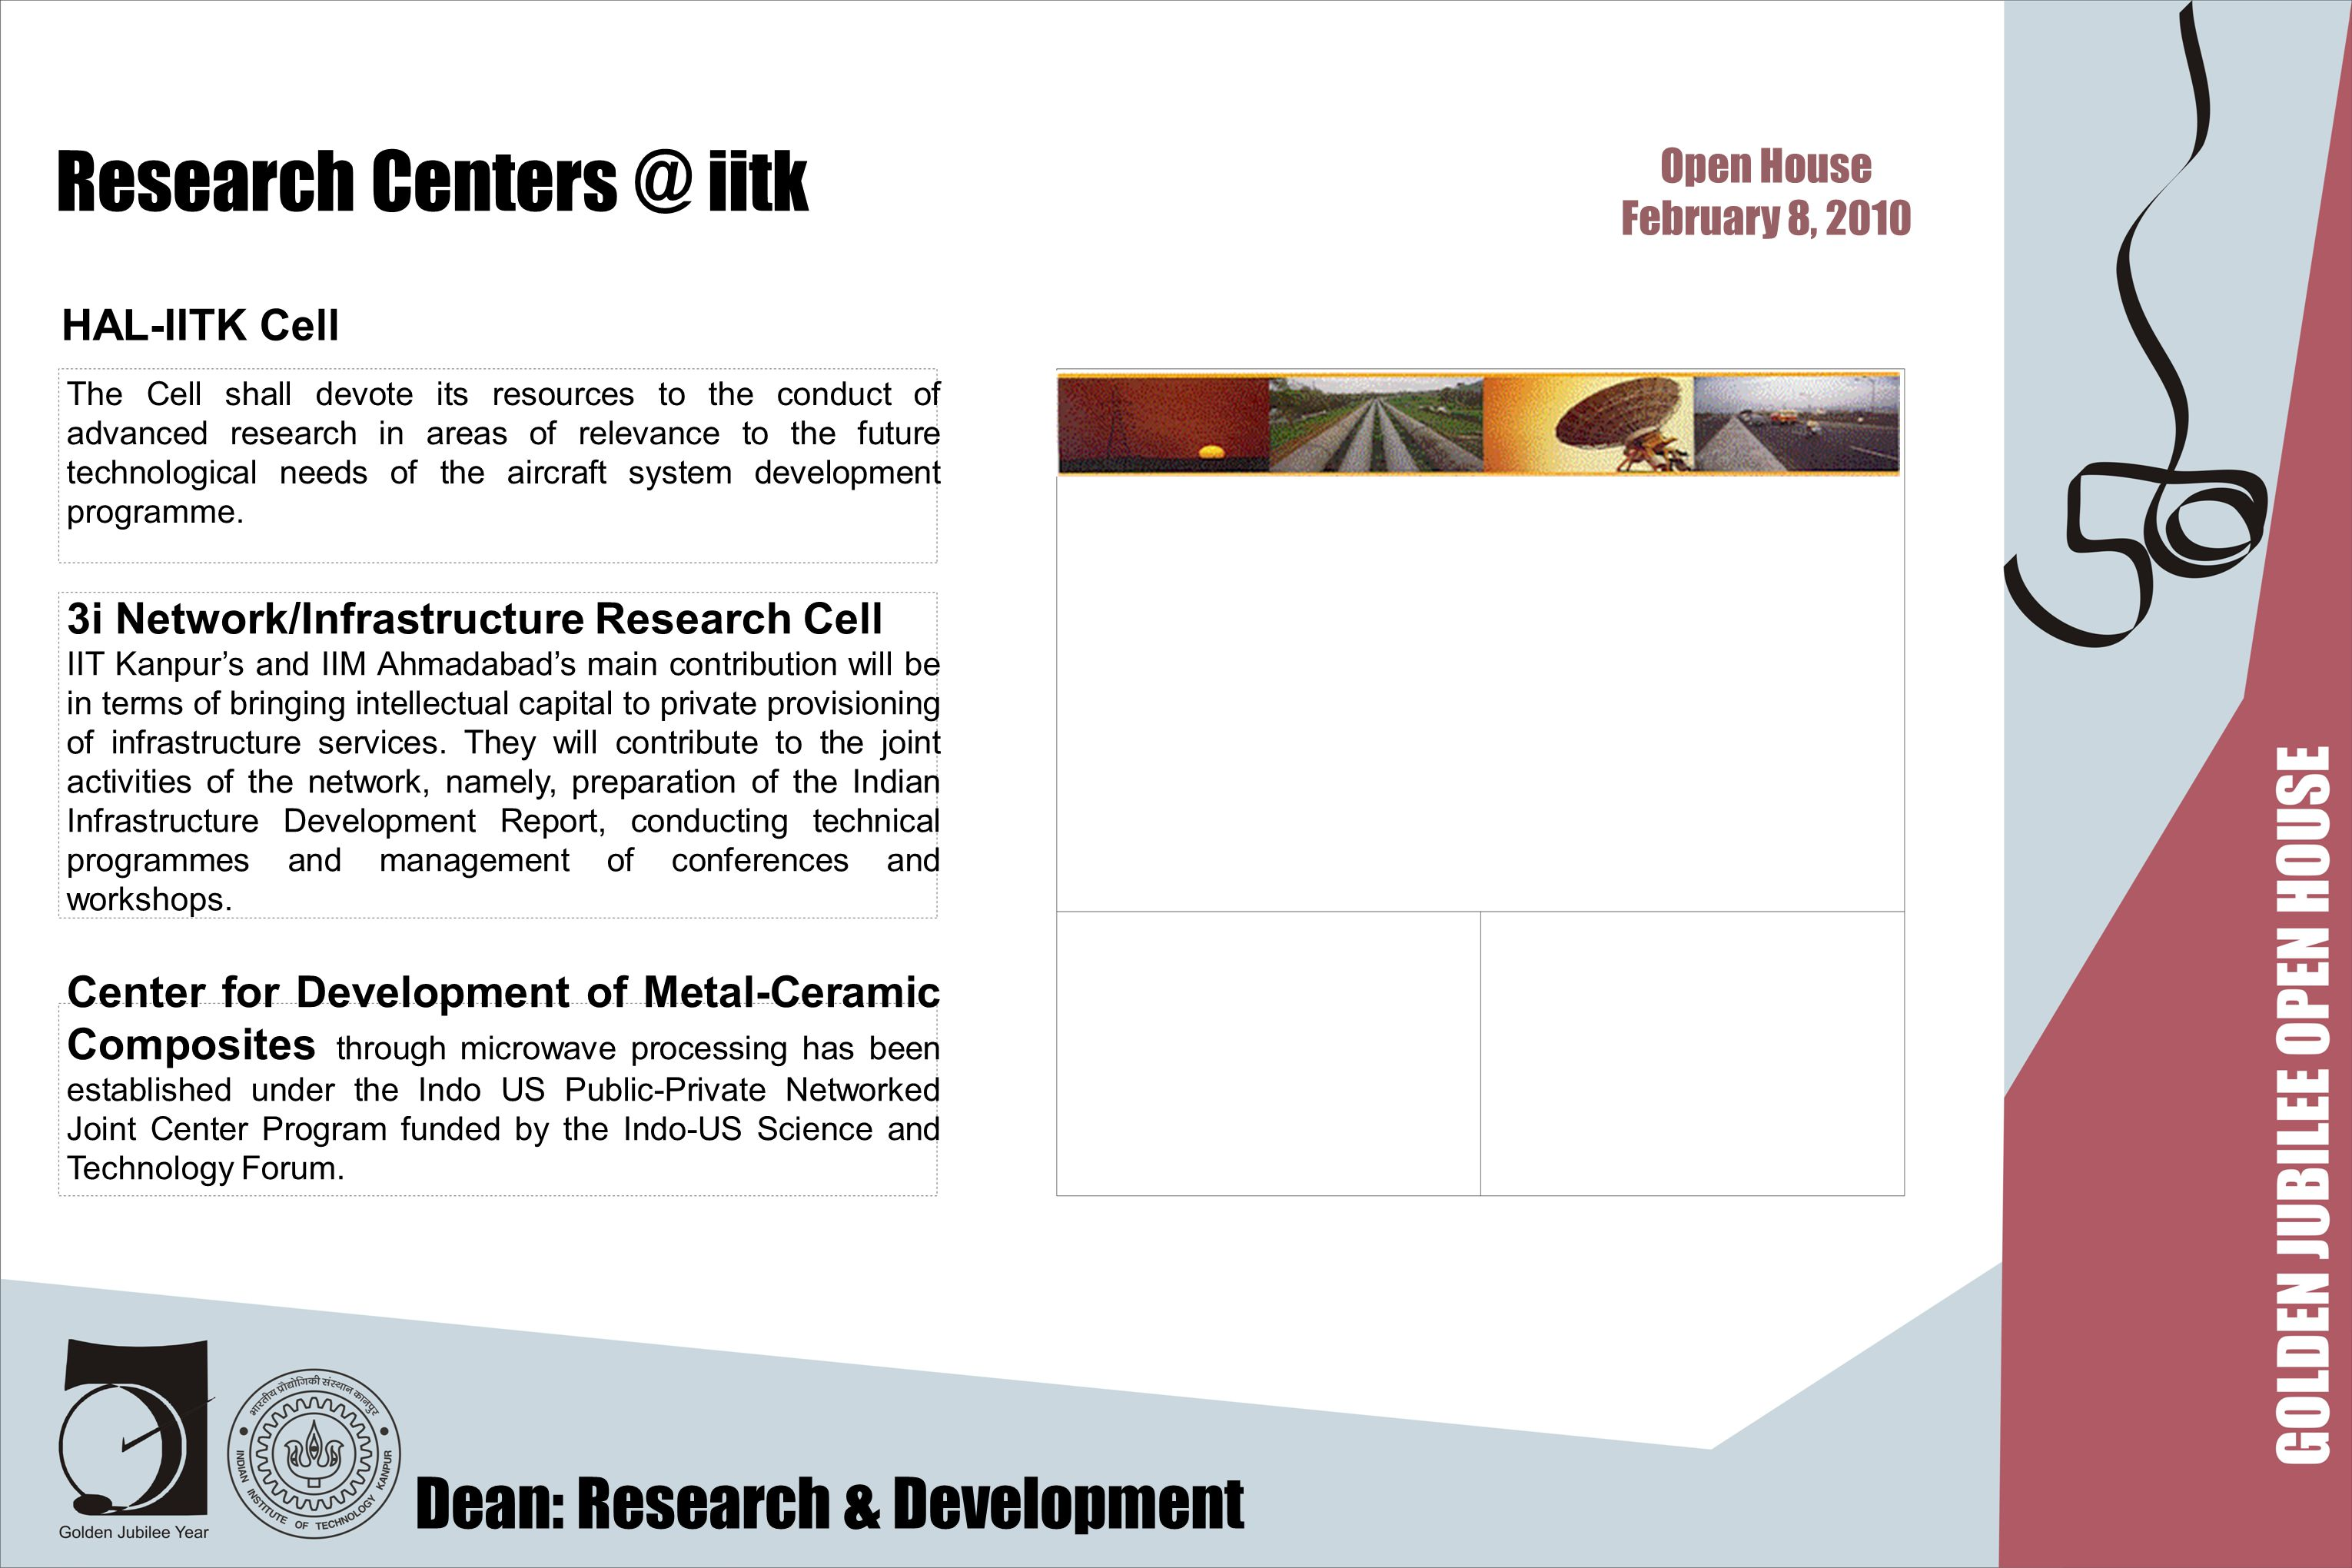 Research Centers @ iitk The Cell shall devote its resources to the conduct of advanced research in areas of relevance to the future technological need